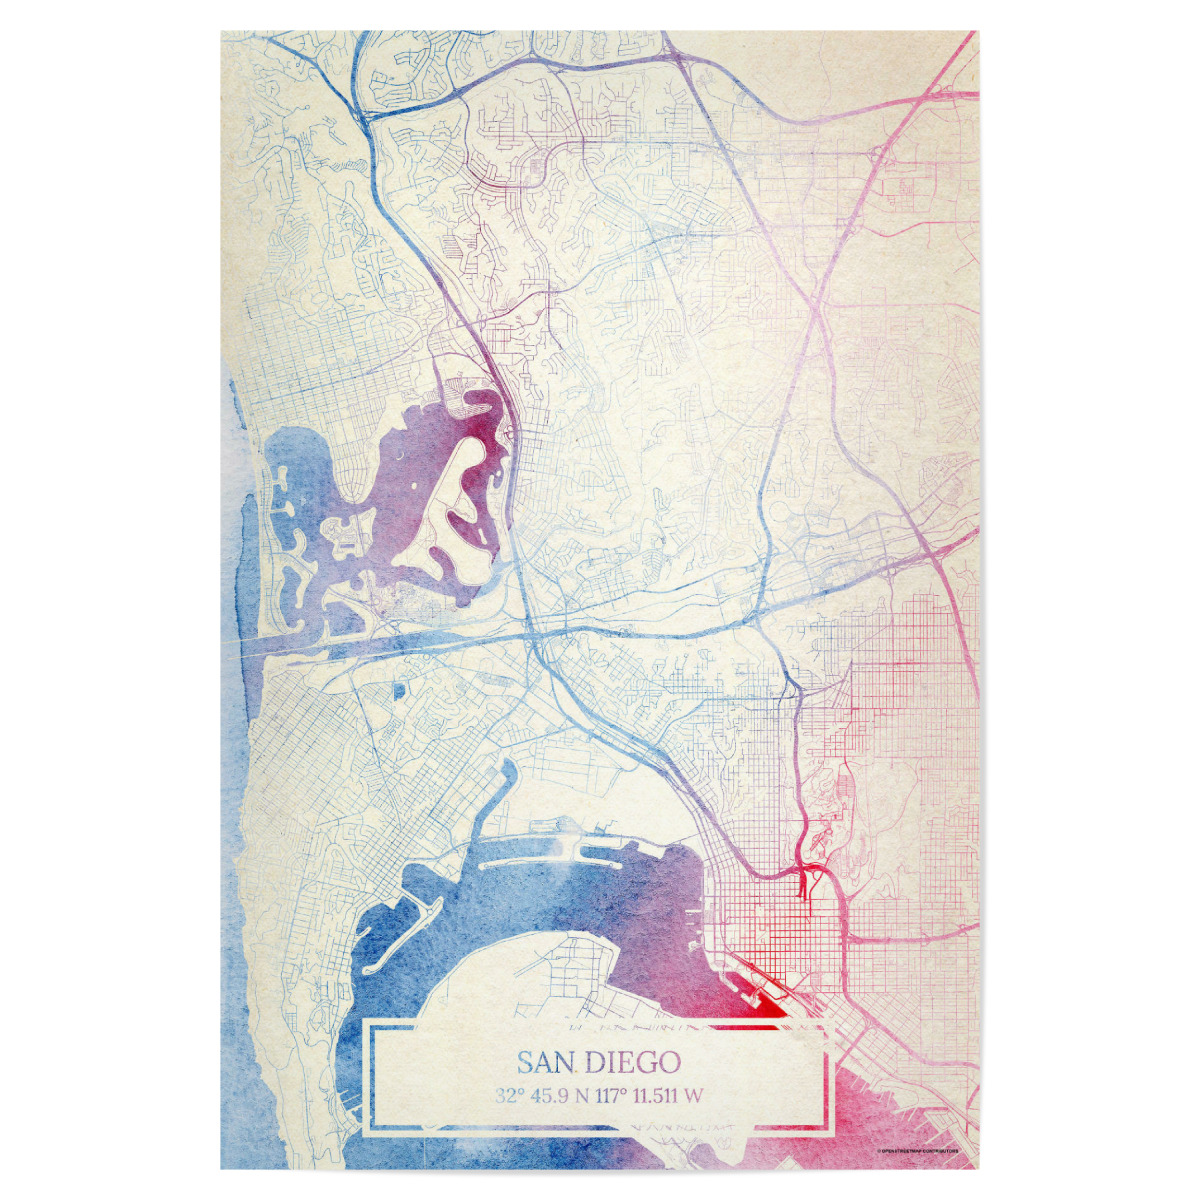 San-Diego USA Map Rose And Serenity II als Poster bei ...